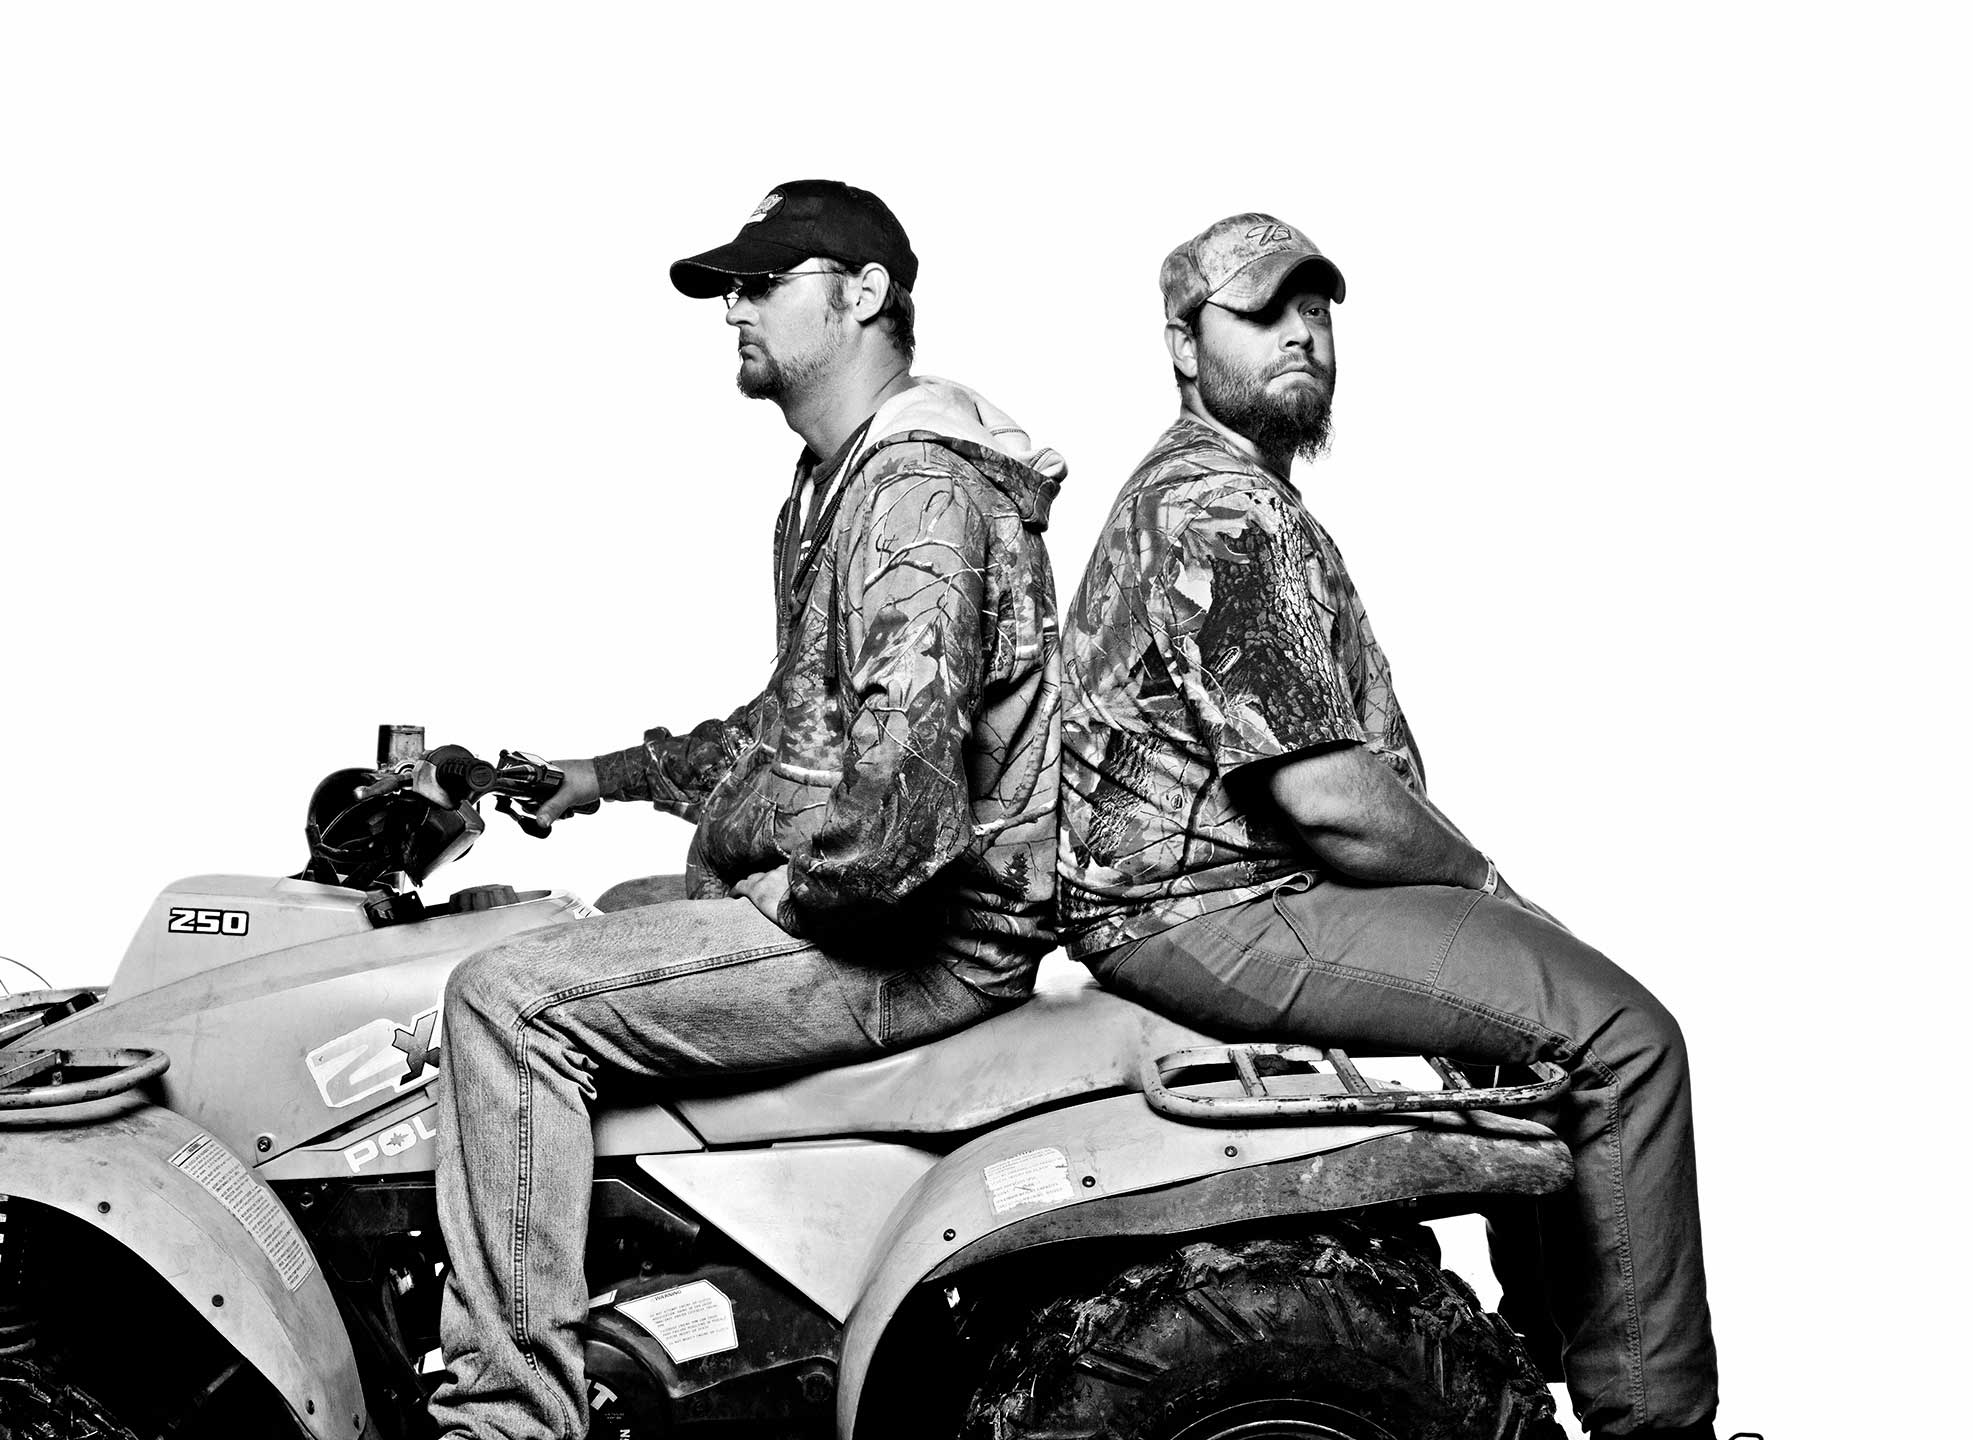 4-Wheeler-Guys.jpg